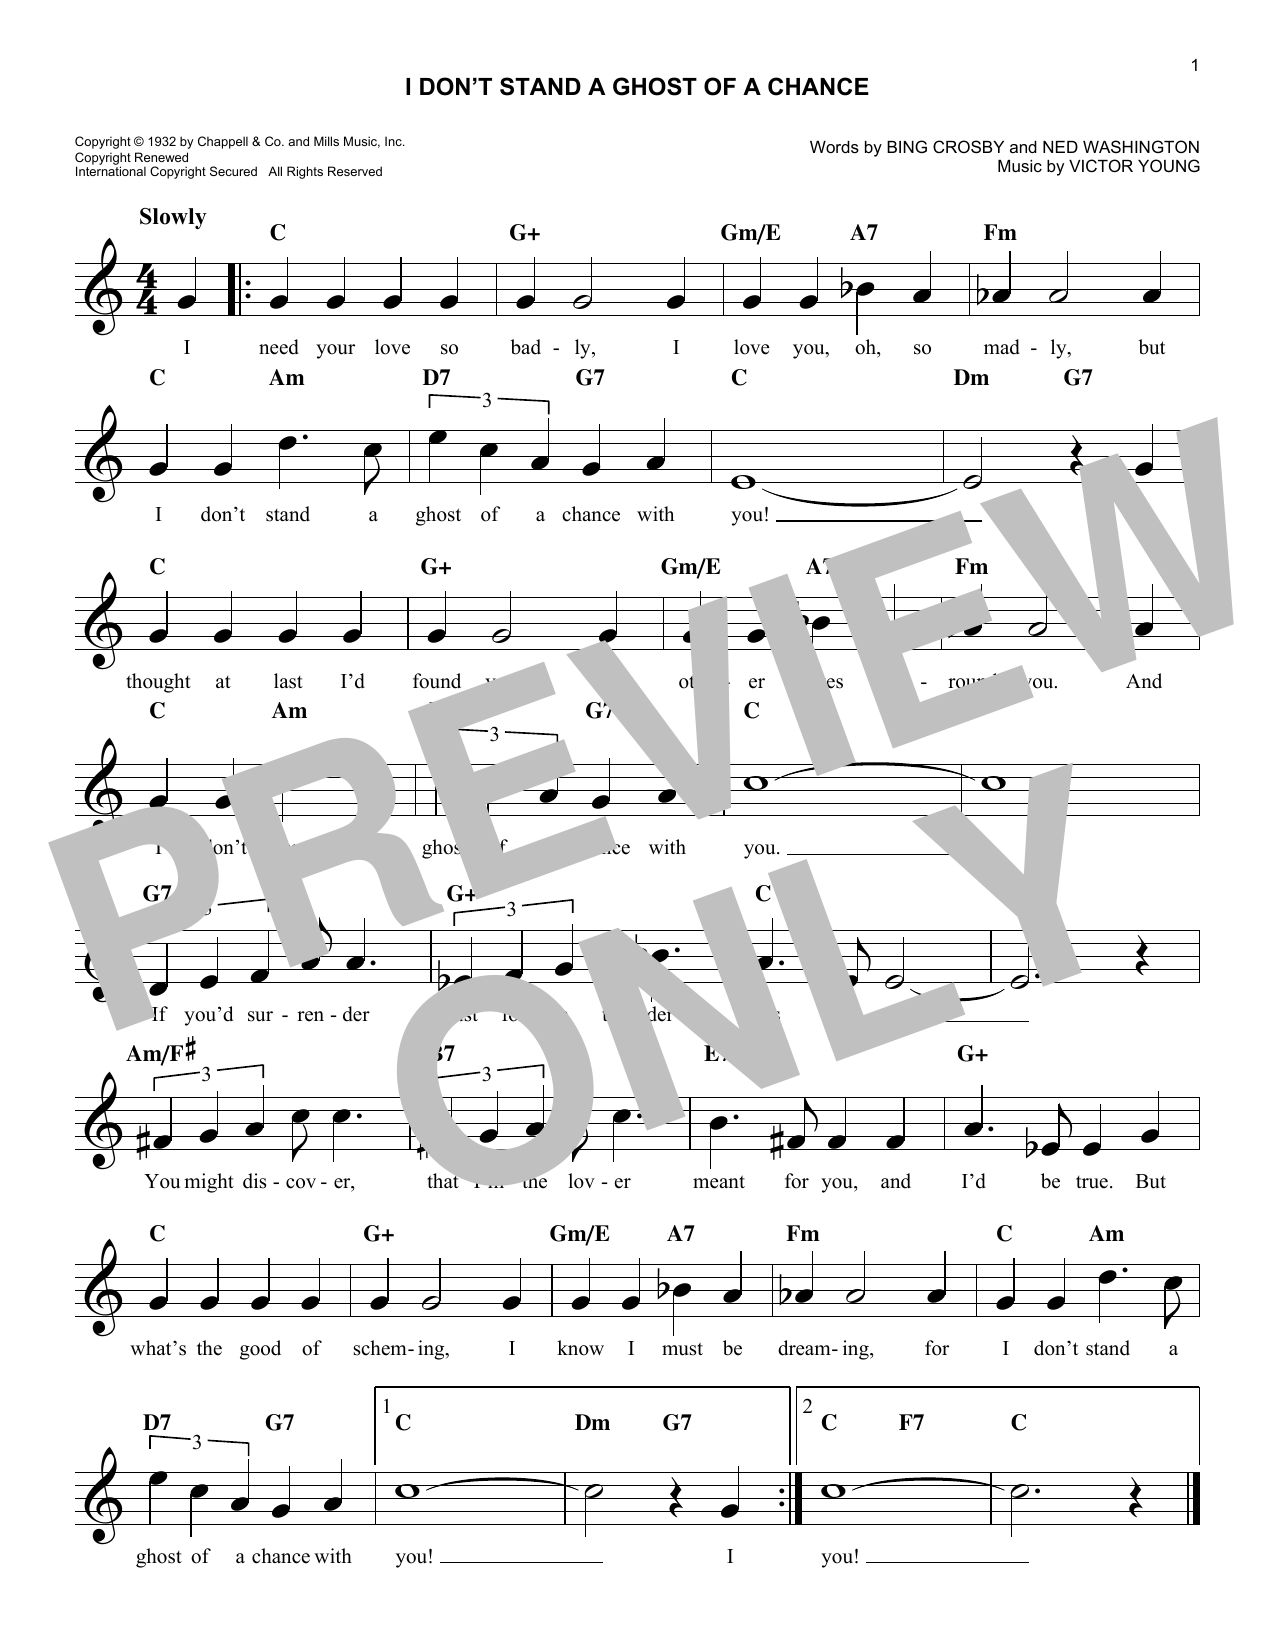 I Don't Stand A Ghost Of A Chance With You Sheet Music